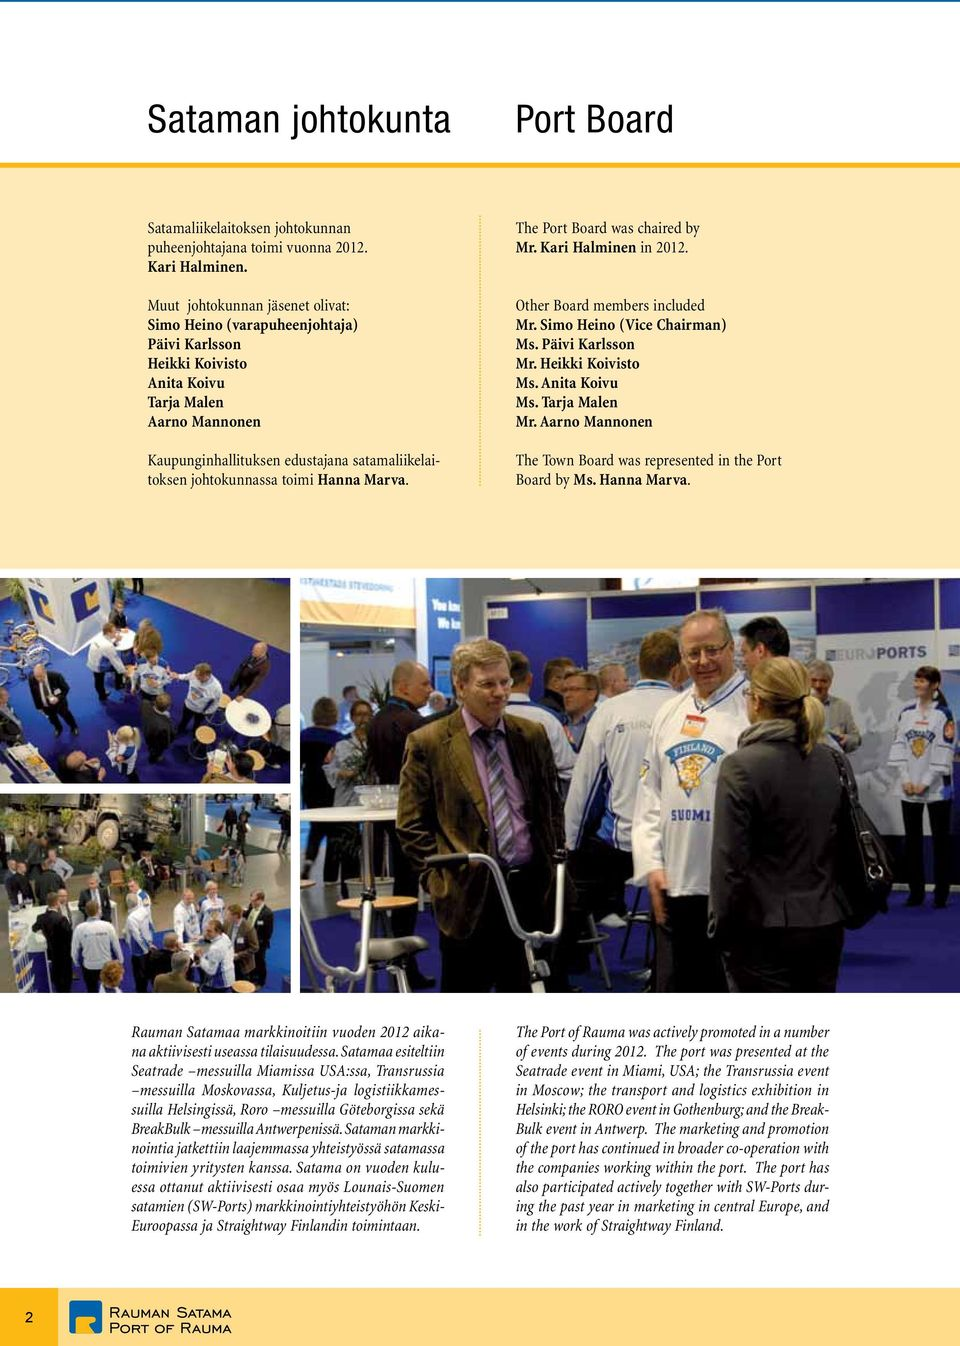 johtokunnassa toimi Hanna Marva. The Port Board was chaired by Mr. Kari Halminen in 2012. Other Board members included Mr. Simo Heino (Vice Chairman) Ms. Päivi Karlsson Mr. Heikki Koivisto Ms.